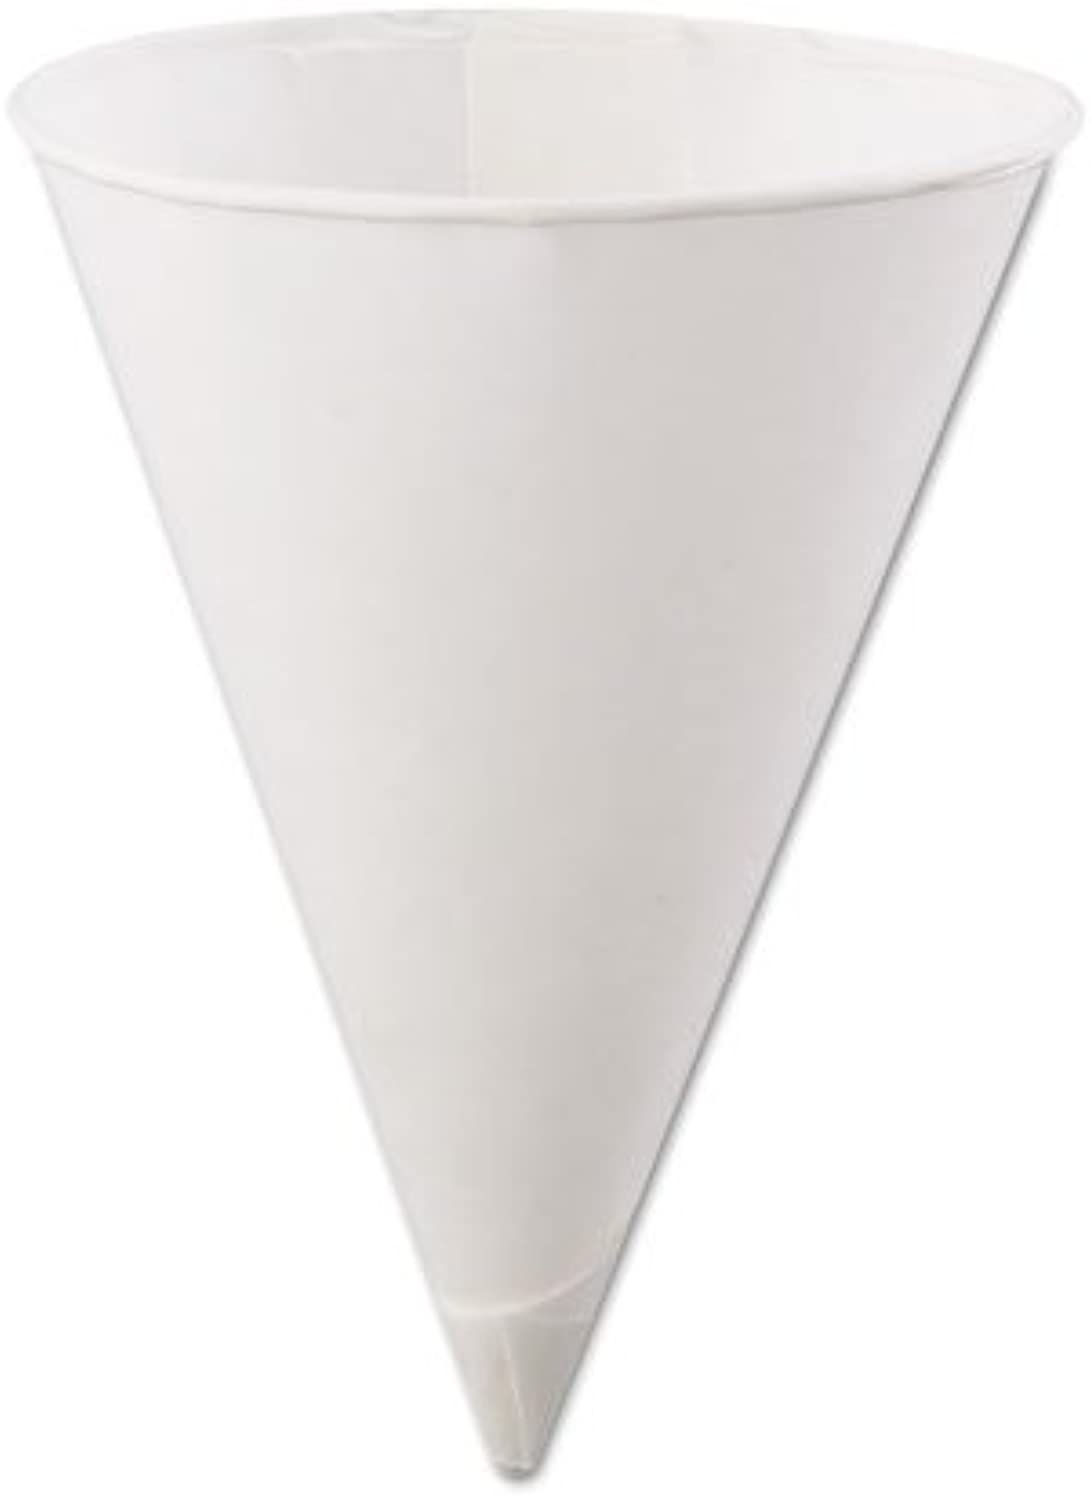 Konie 45KR Rolled Rim Paper Cone Cups, 4.5oz, White, 200 per Bag (Case of 25 Bags)